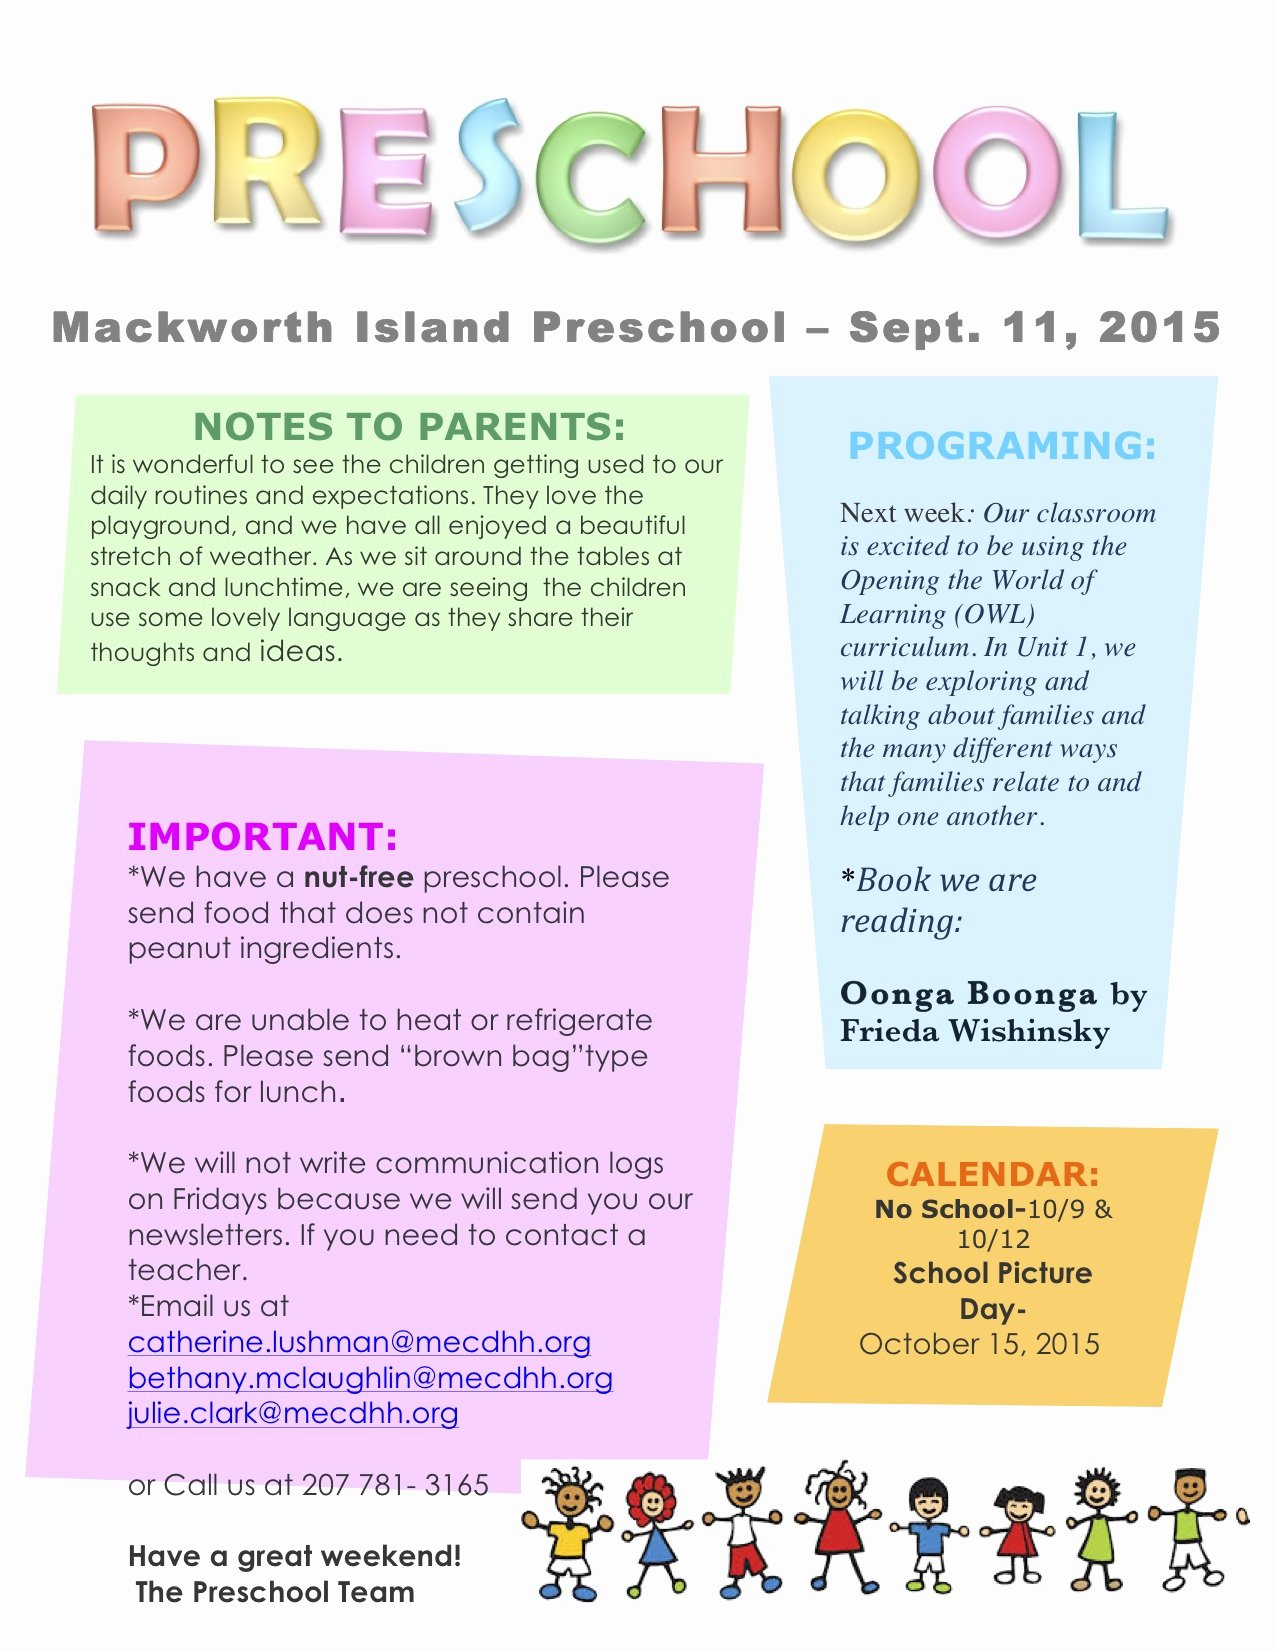 Preschool Newsletters for Parents Lovely September 11 Newsletter – Preschool Blog